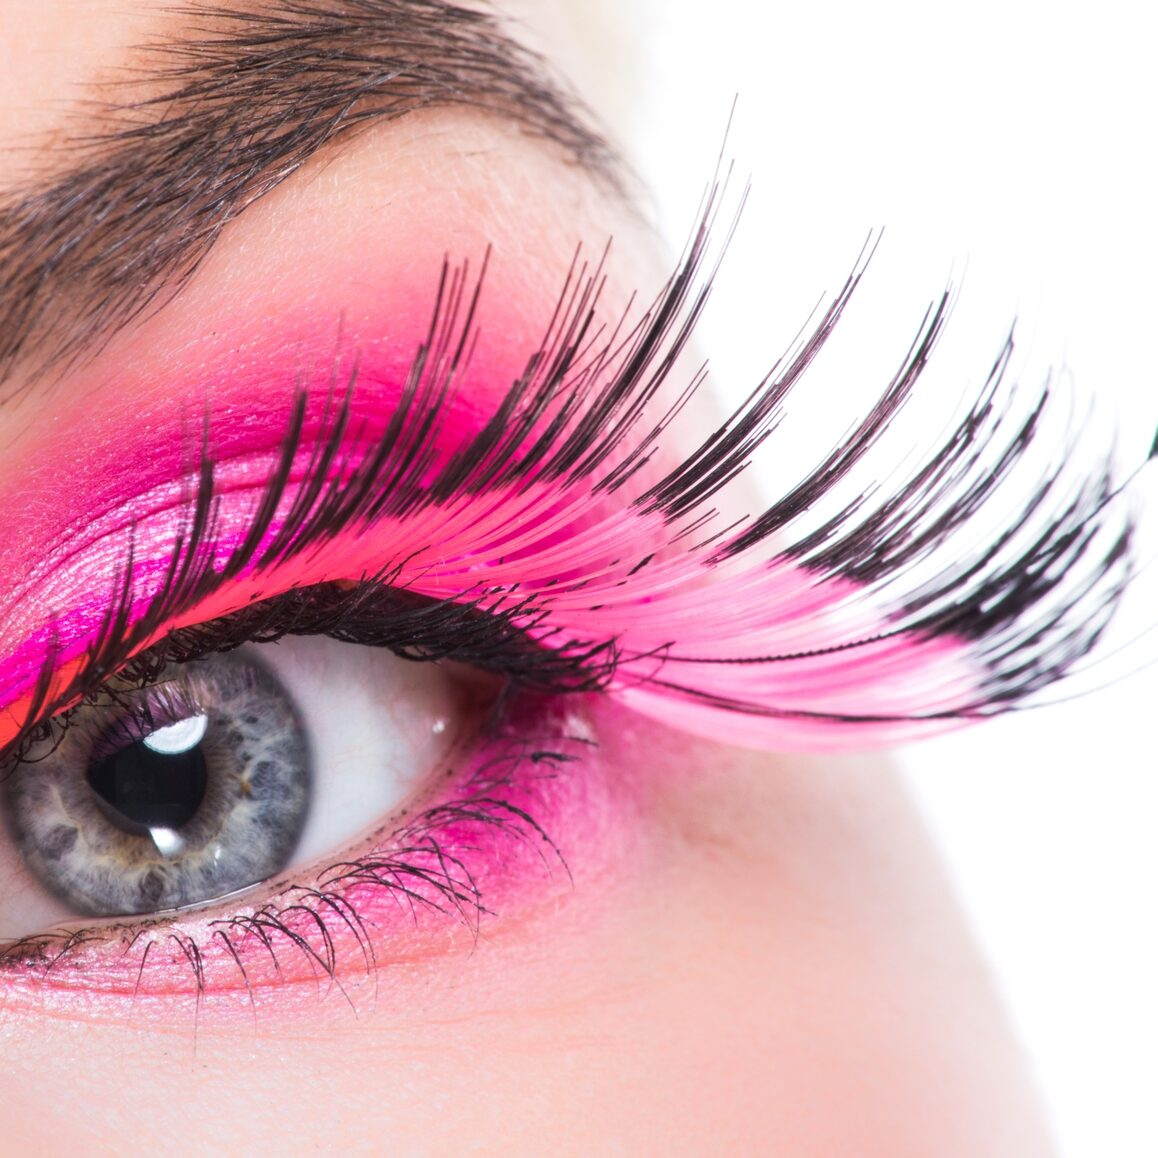 074291773-eye-feather-false-eyelashes